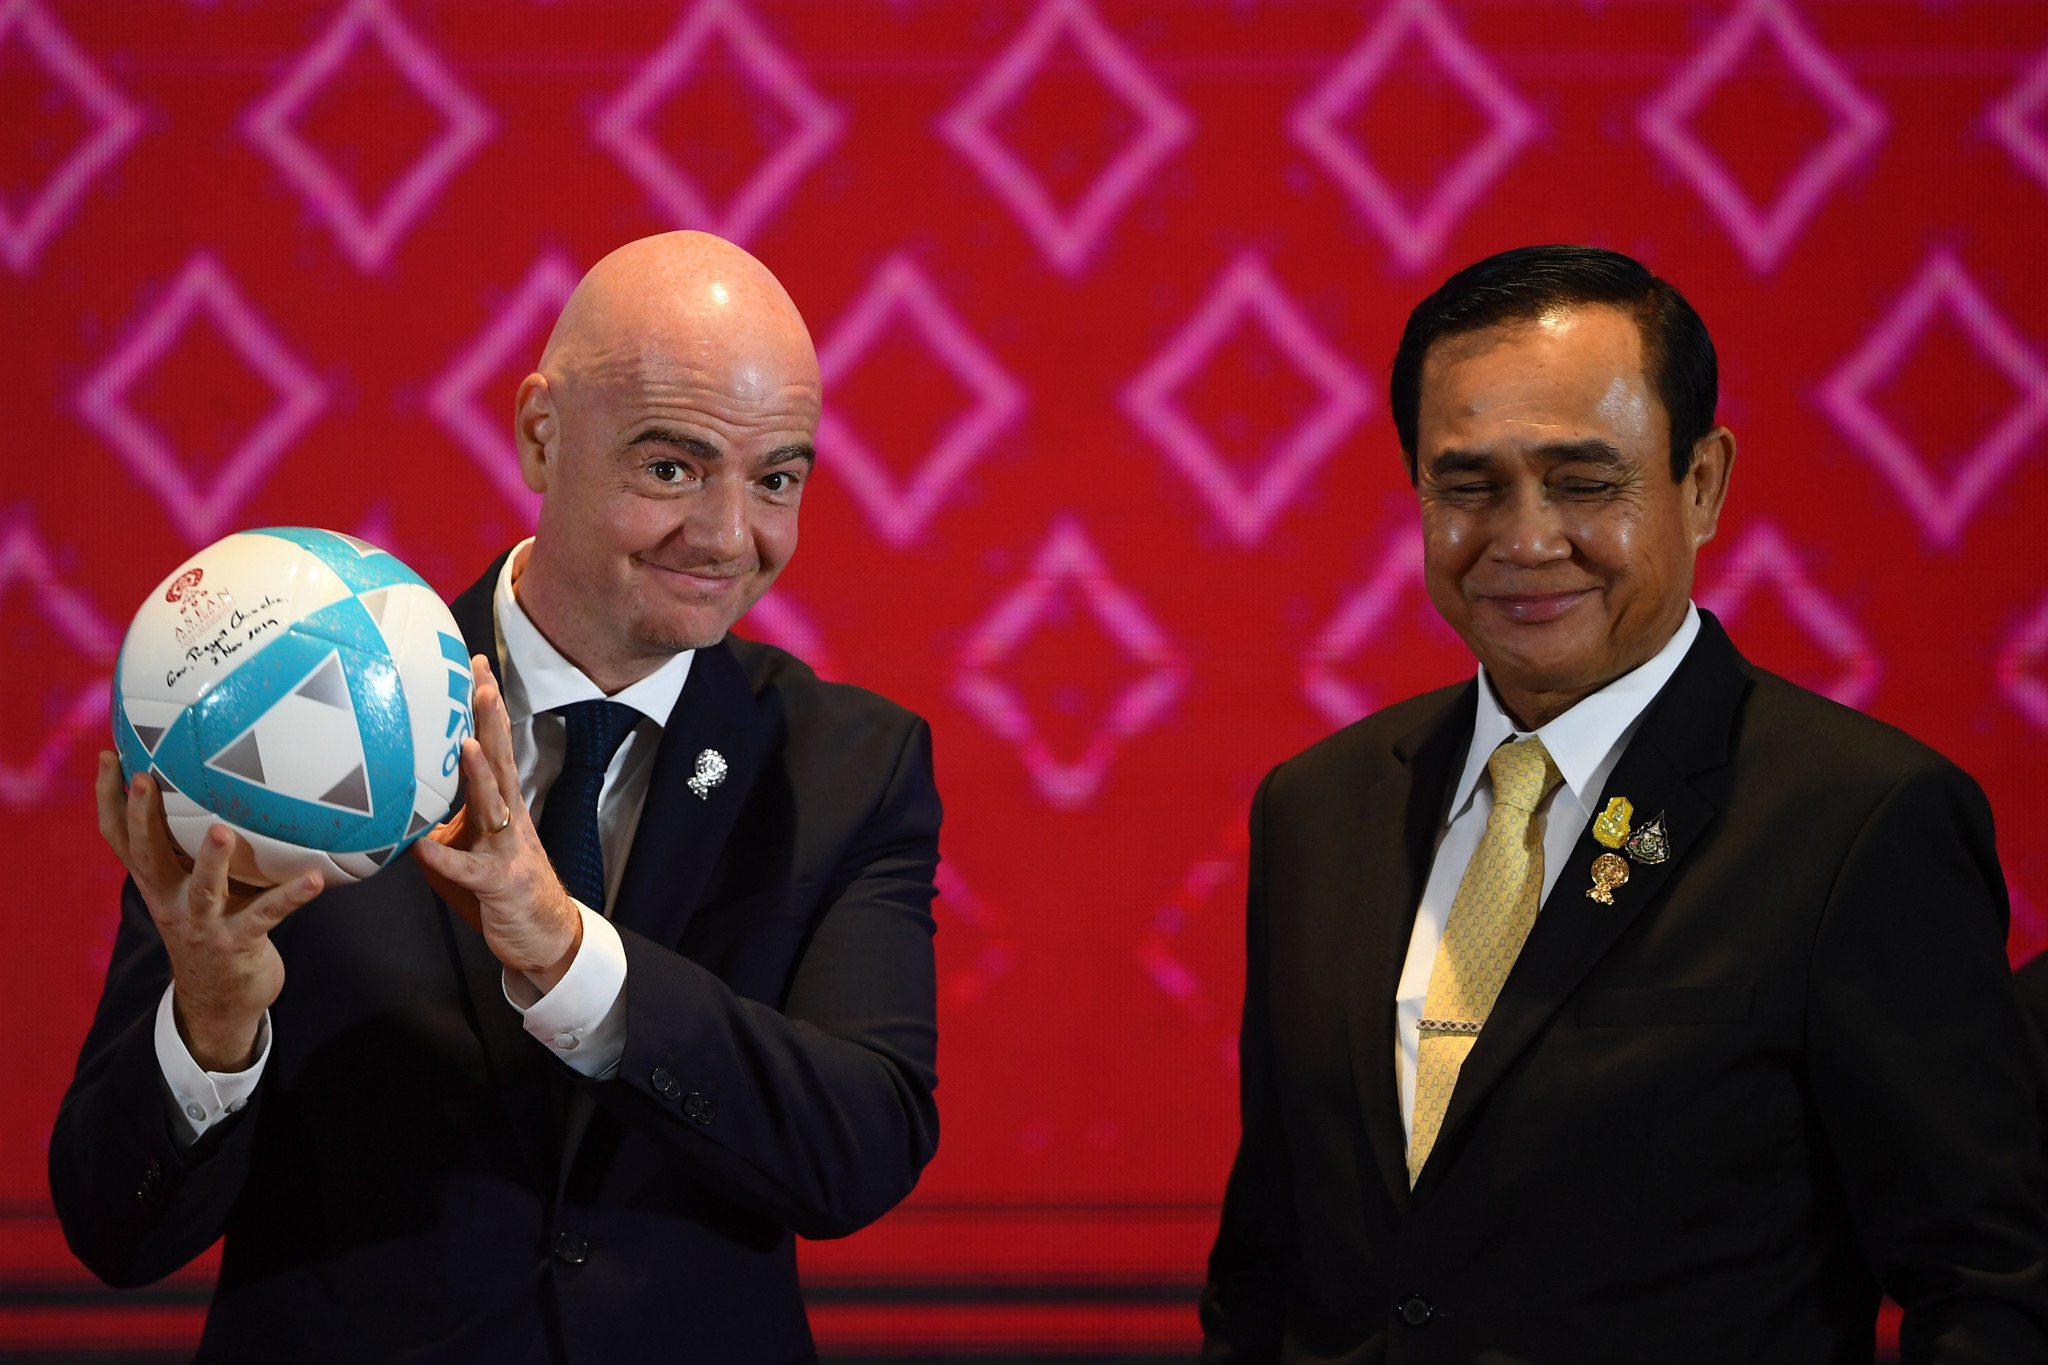 Gianni Infantino holds a football alongside Thailand's Prime Minister Prayut Chan-O-Cha ©Getty Images